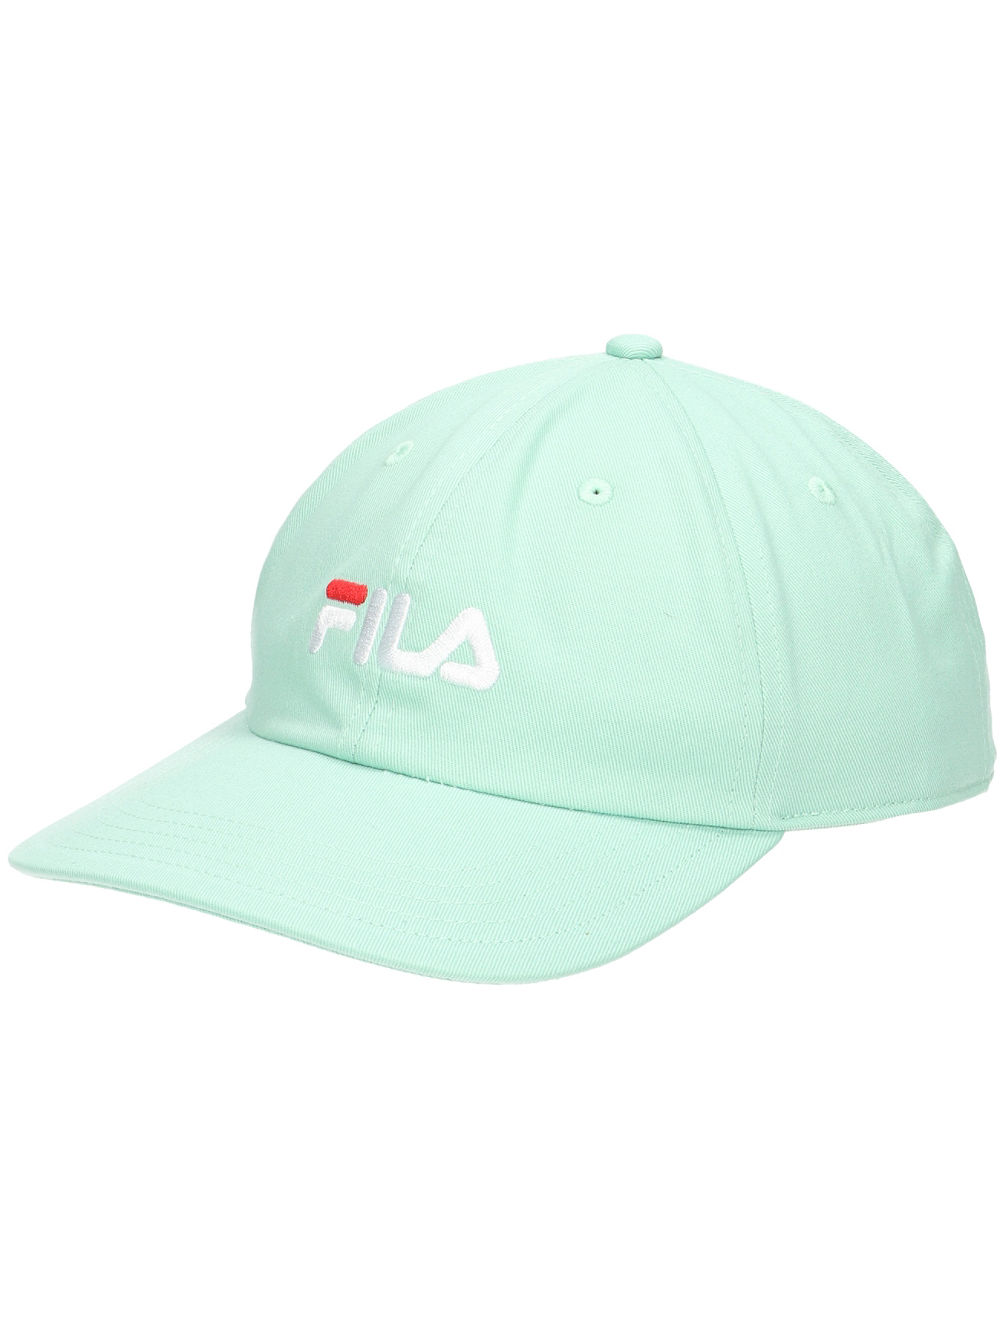 Dad Linear Strap Back Kšiltovka